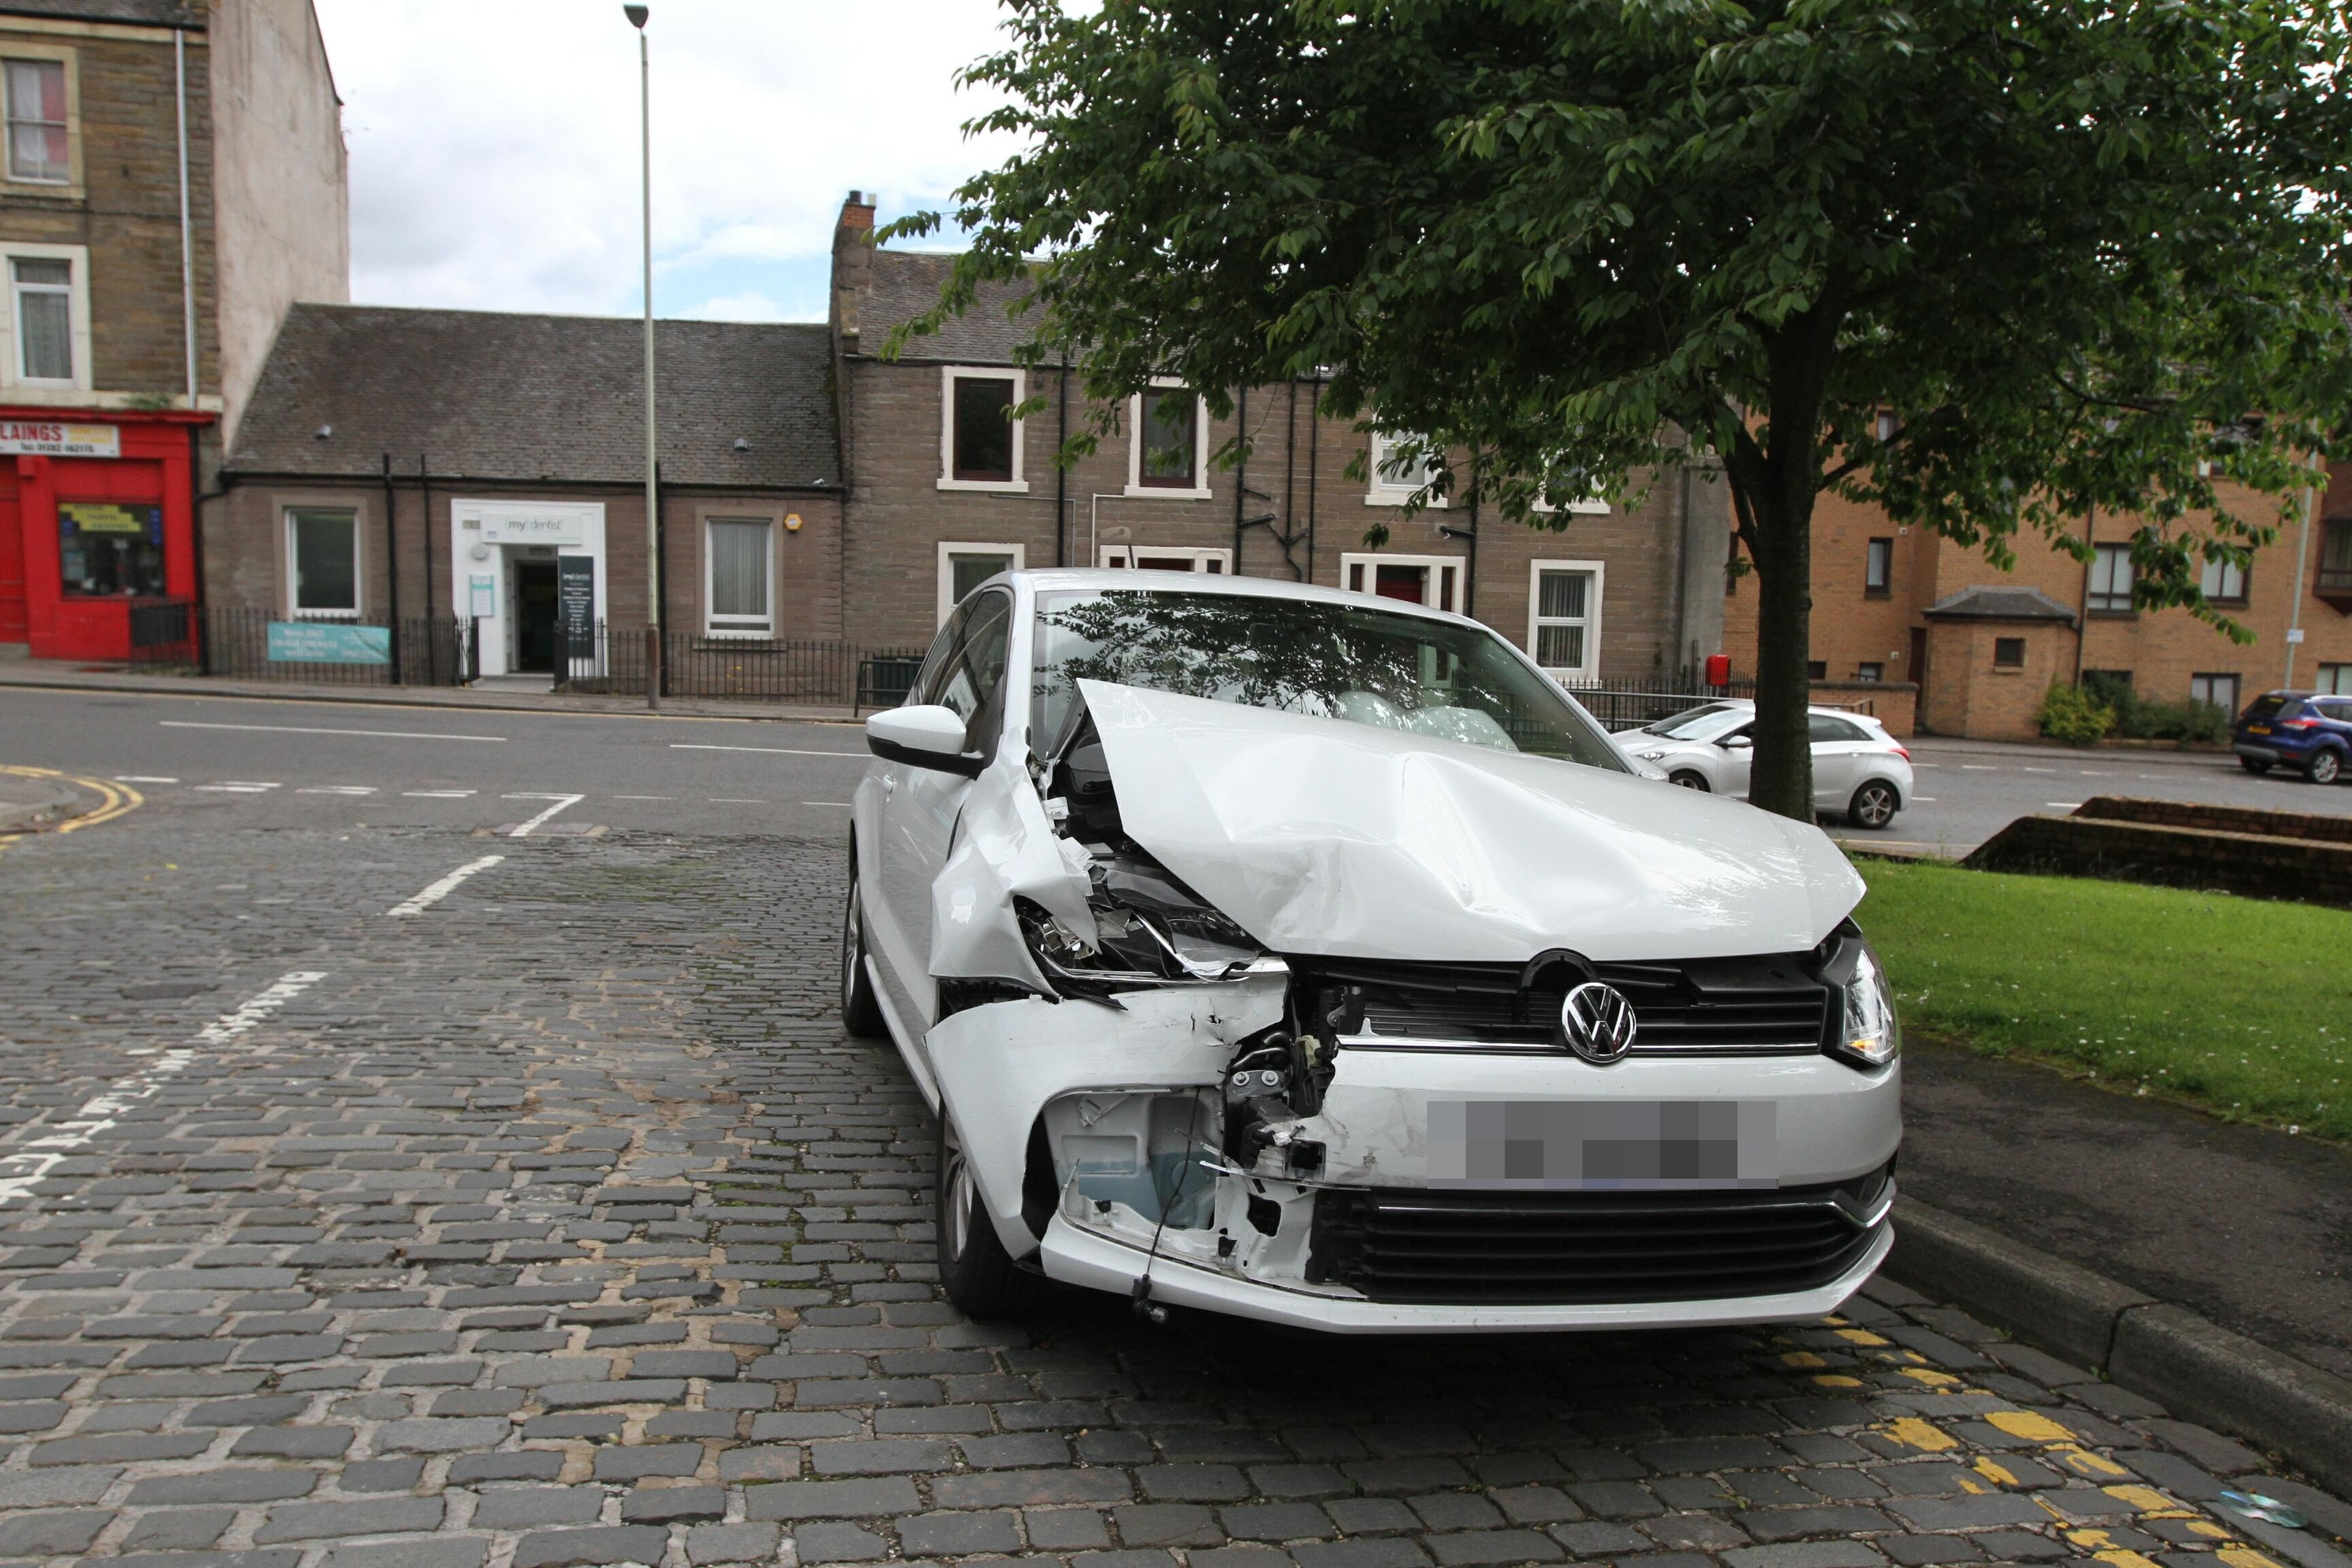 One of the vehicles involved in the smash